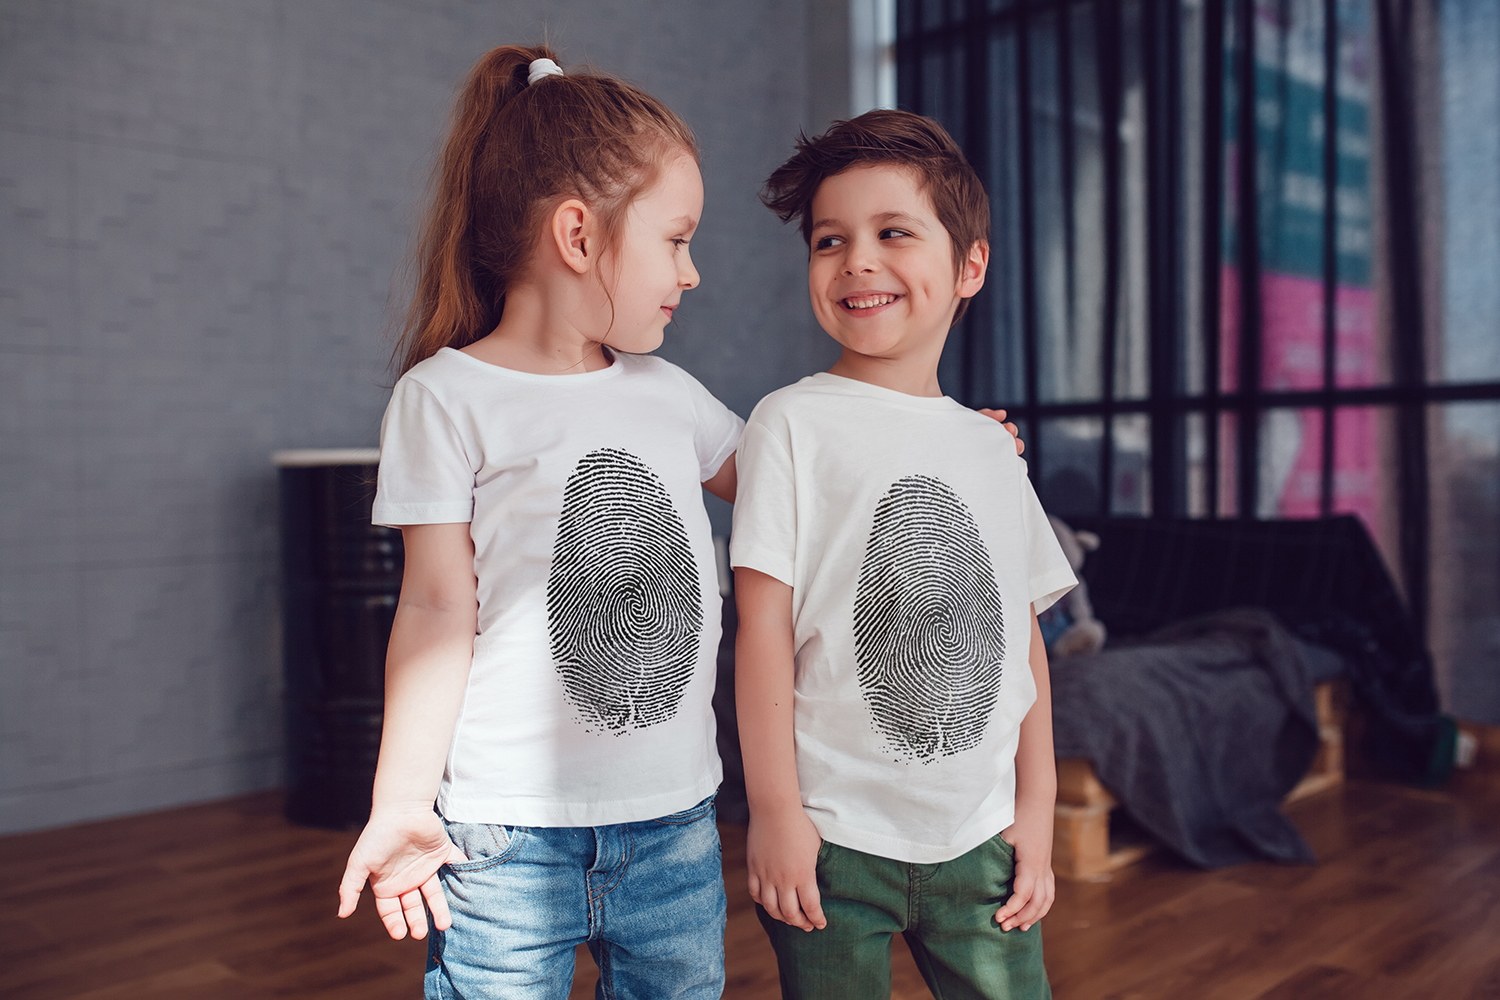 Kids T-Shirt Mock-Up Vol.3 2017 example image 5